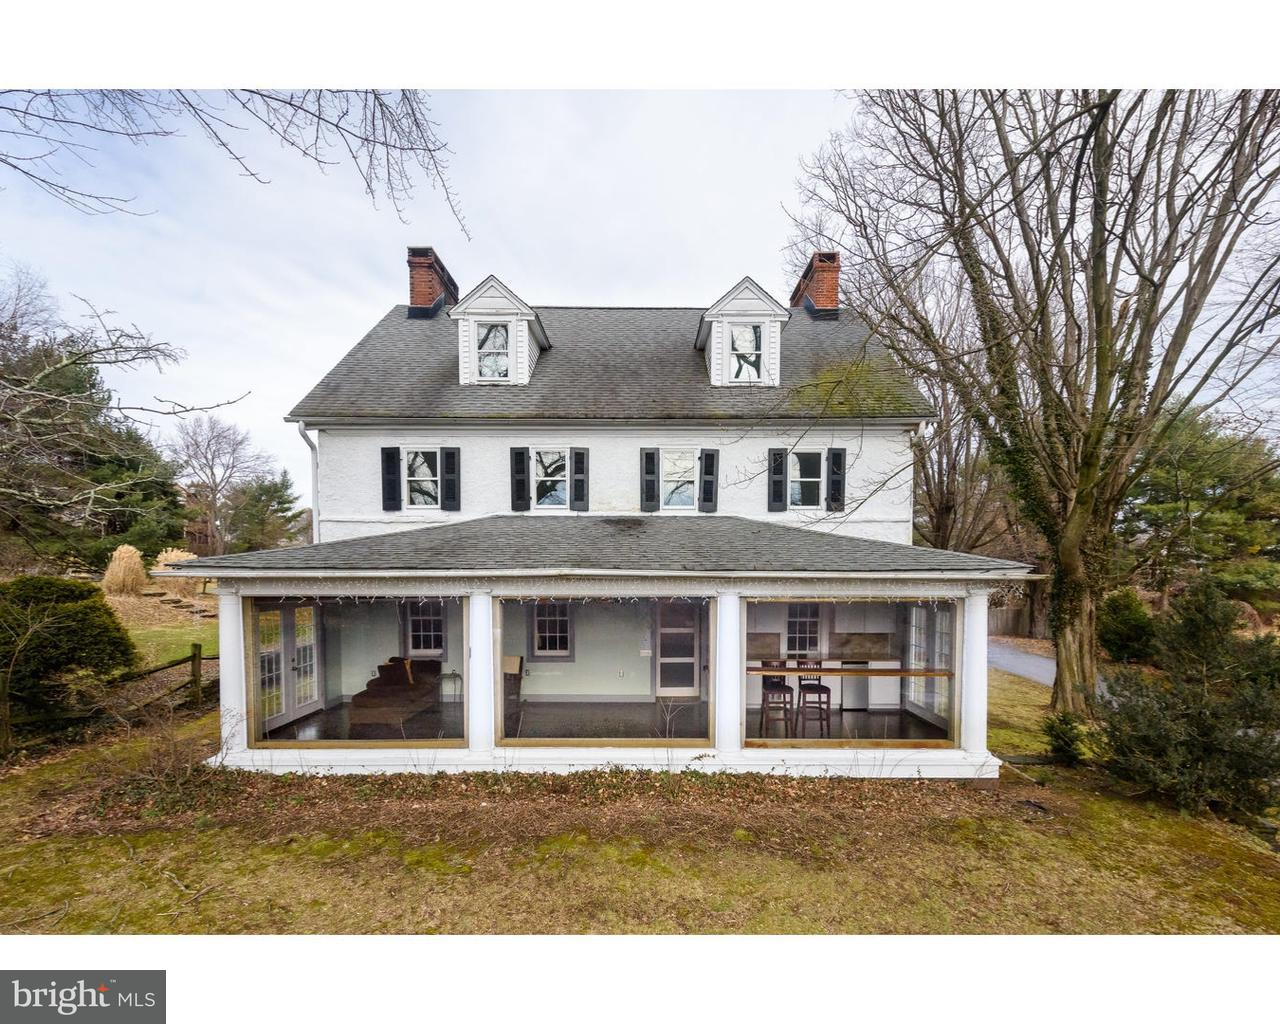 3561 PROVIDENCE RD, NEWTOWN SQUARE - Listed at $599,000, NEWTOWN SQUARE